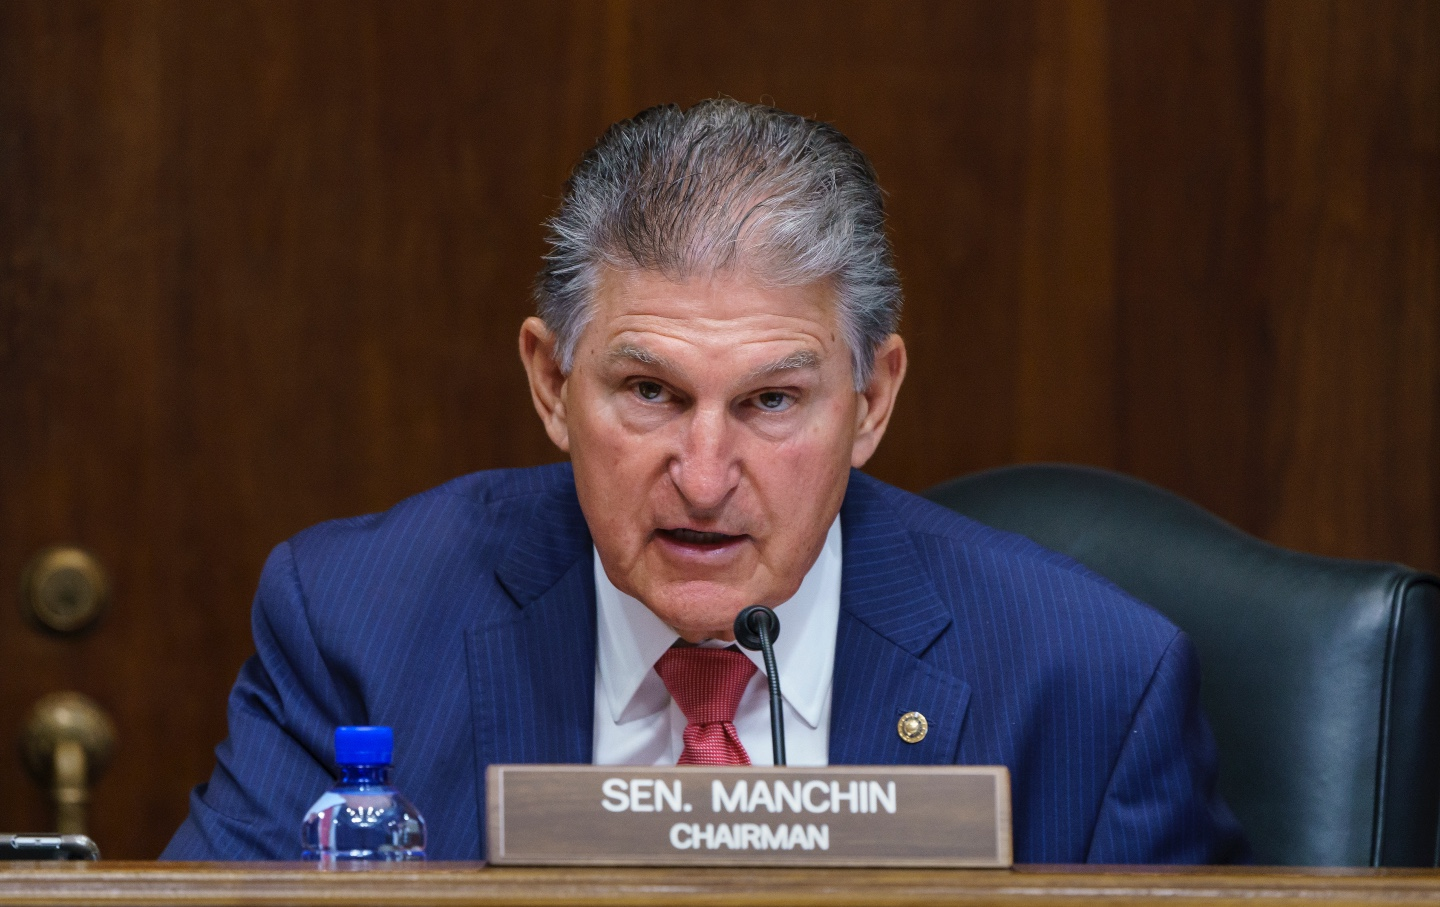 Manchin's Shameful Child Care Stance Isn't Just Bad Politics. It's Self-Defeating Policy.